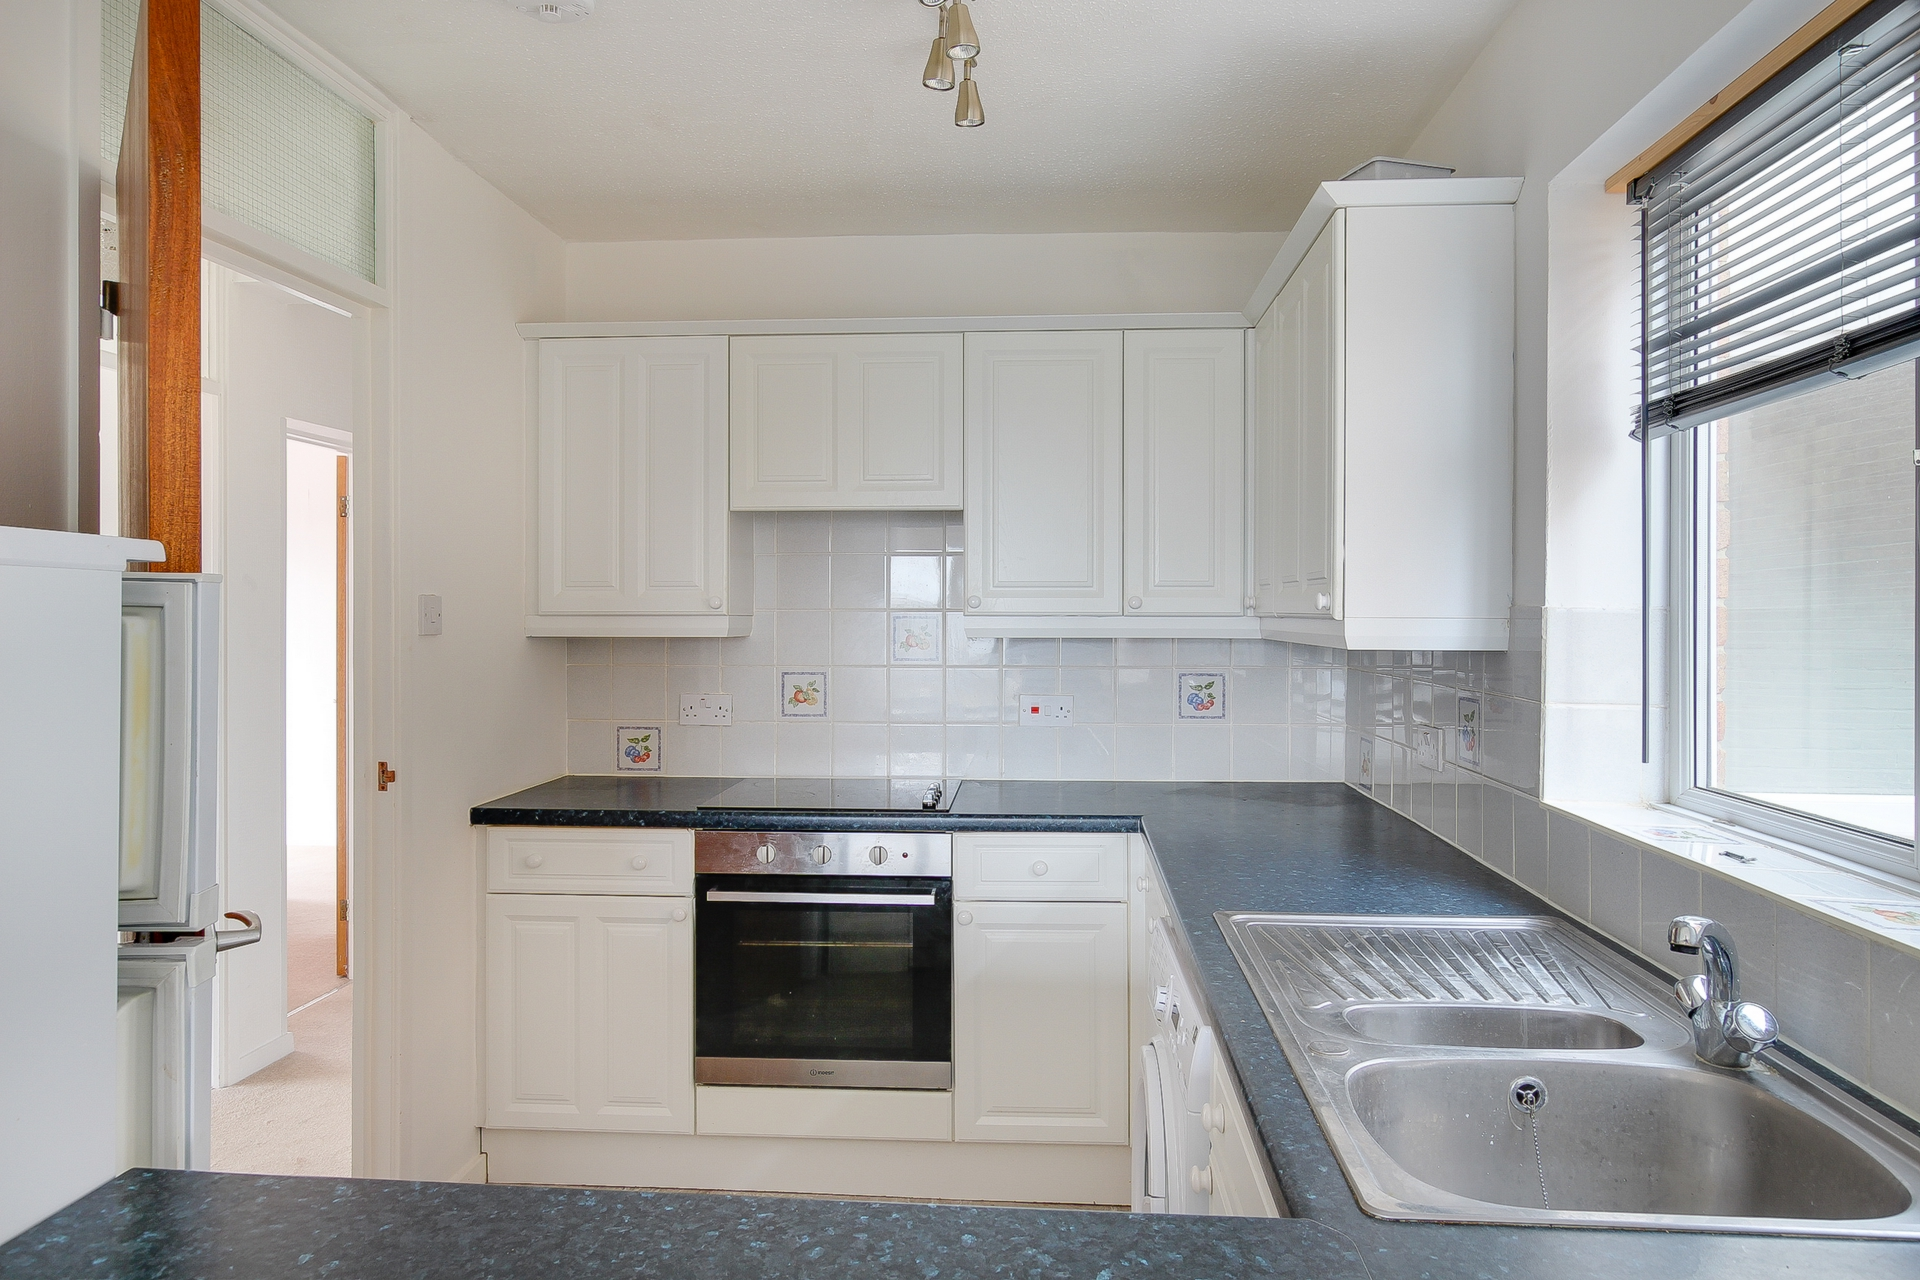 2 bed apartment to rent in The Parade, Birchington, CT7 - Property Image 1